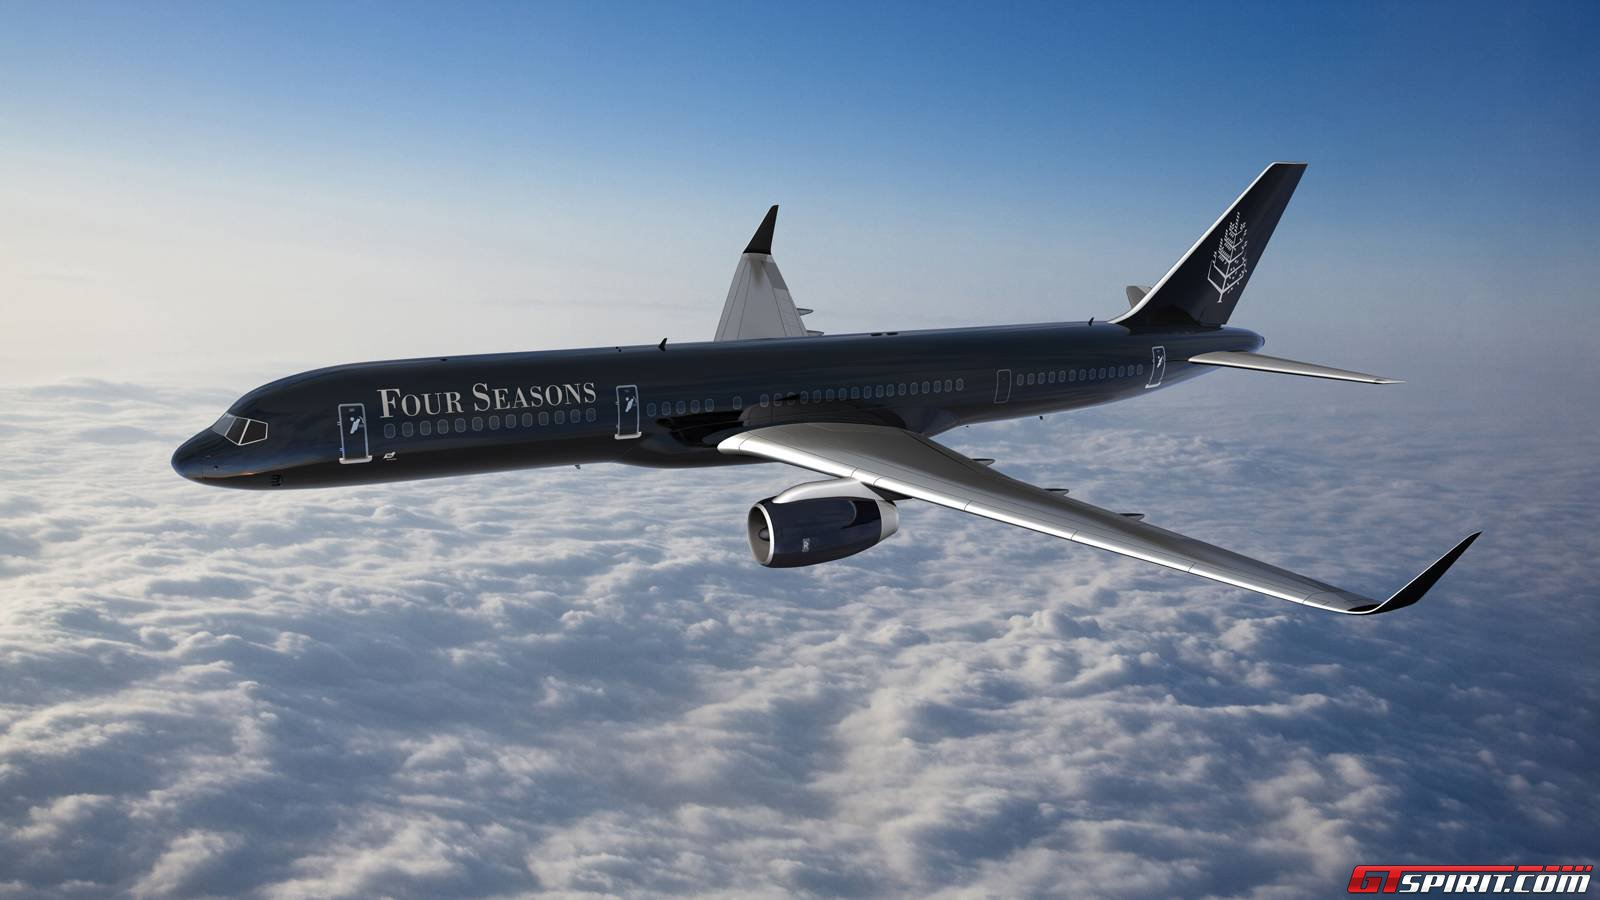 Four Seasons Launches Luxurious Boeing 757 Jet Gtspirit